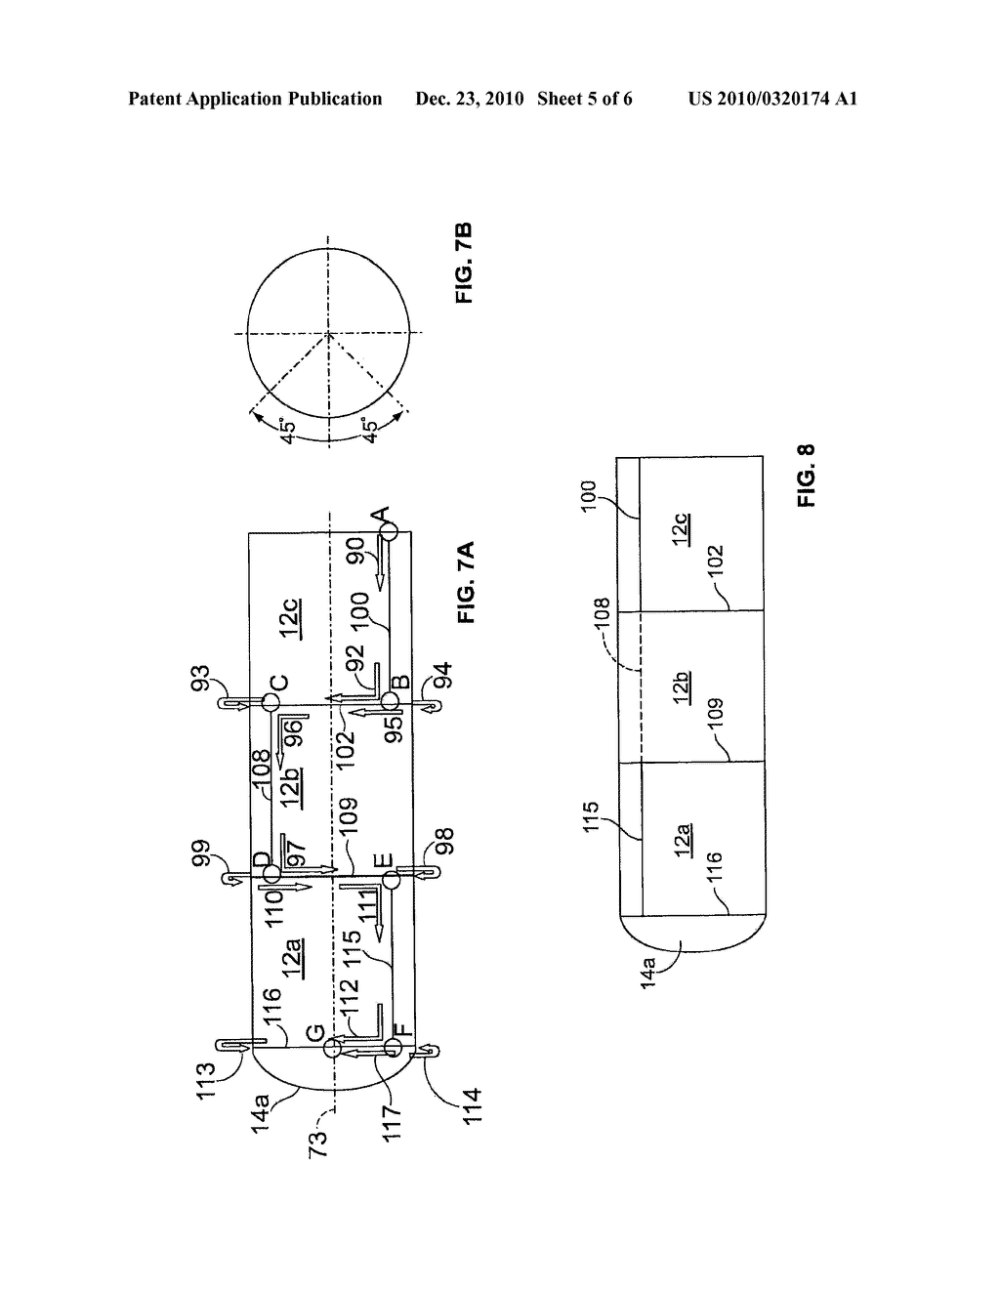 medium resolution of hybrid laser arc welding system and method for railroad tank car fabrication diagram schematic and image 06